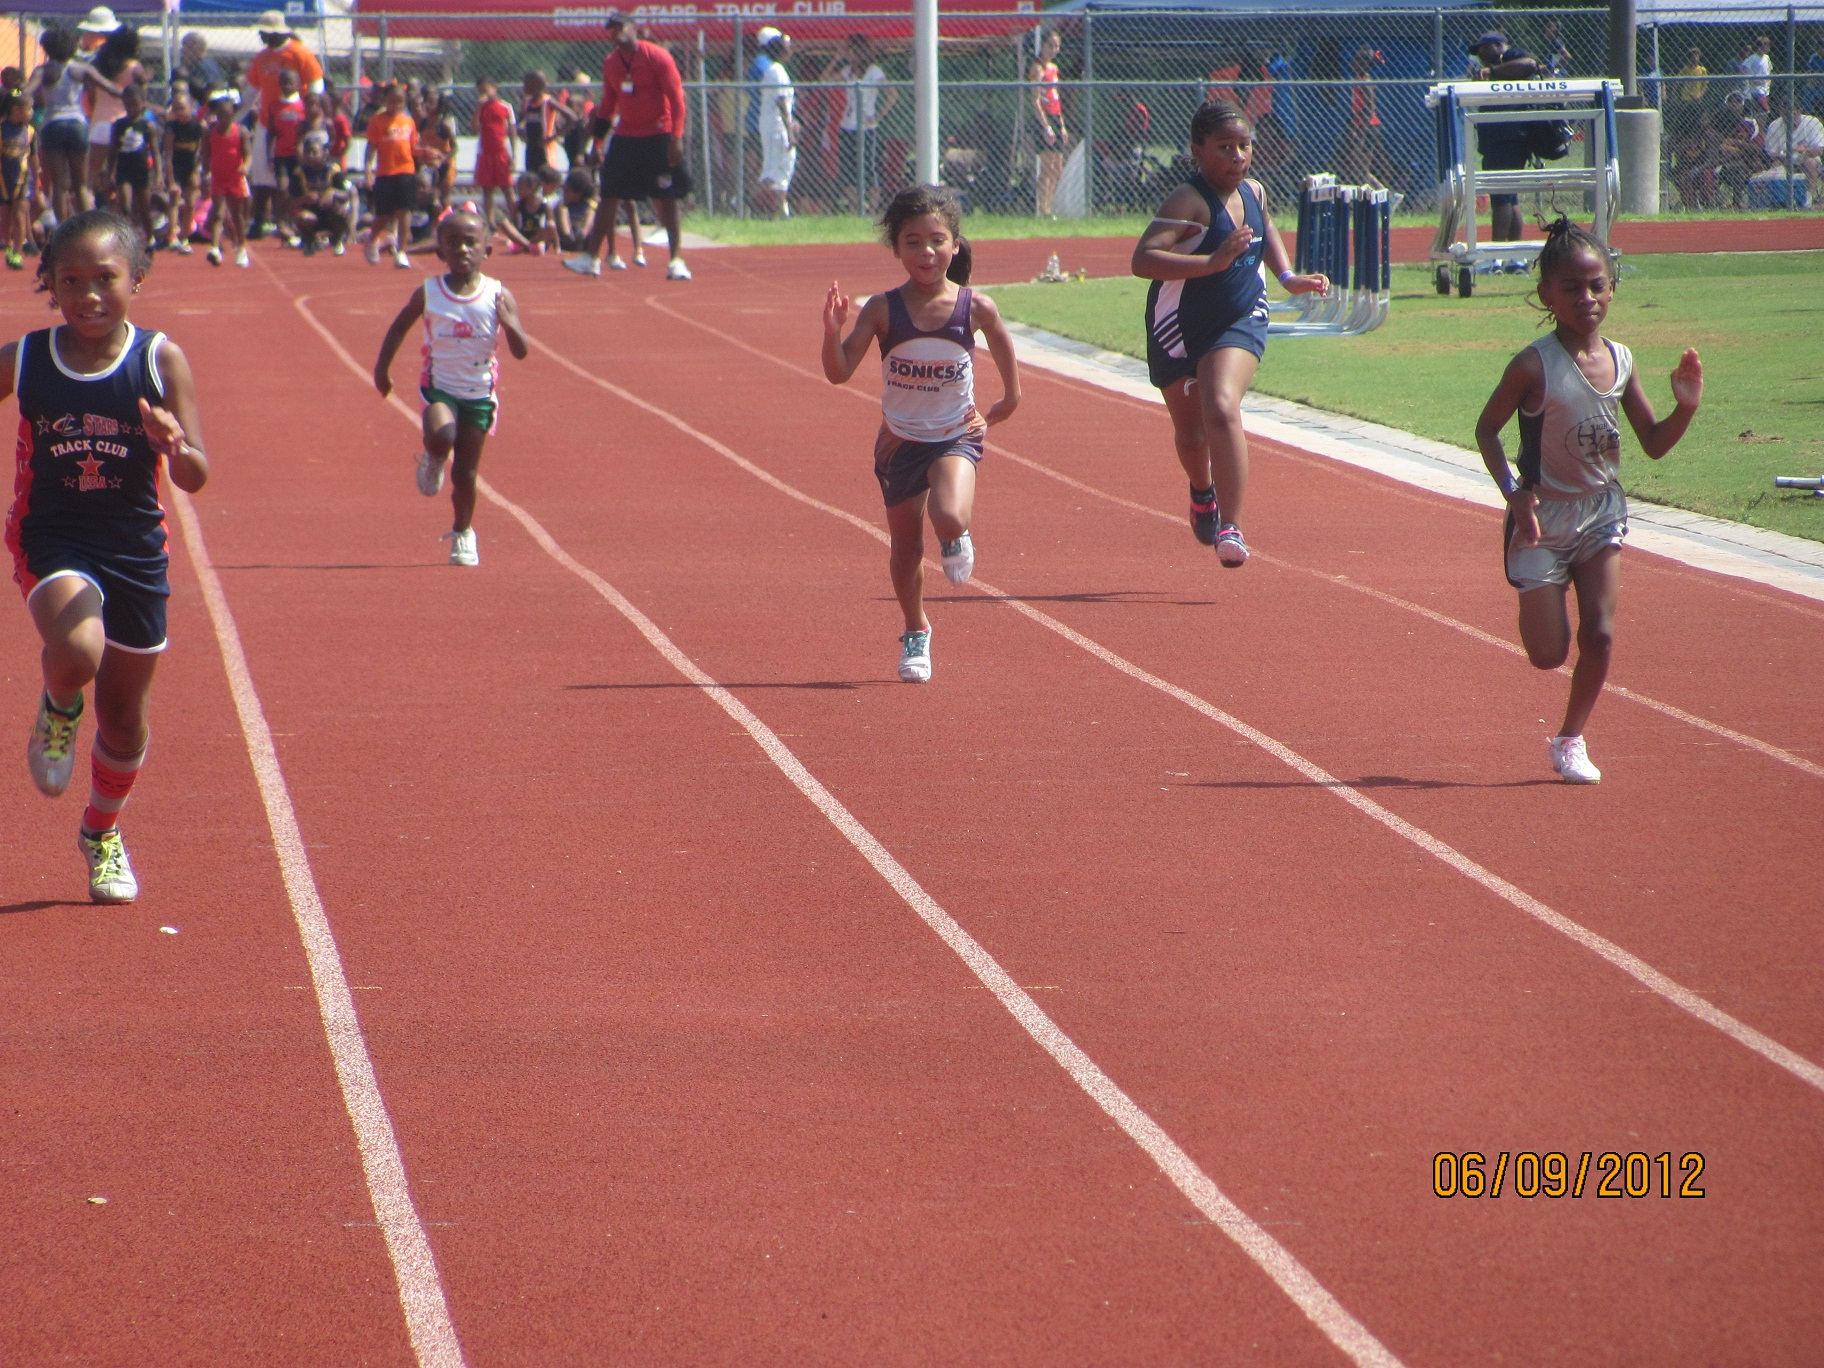 Anyssa Solis in the 100